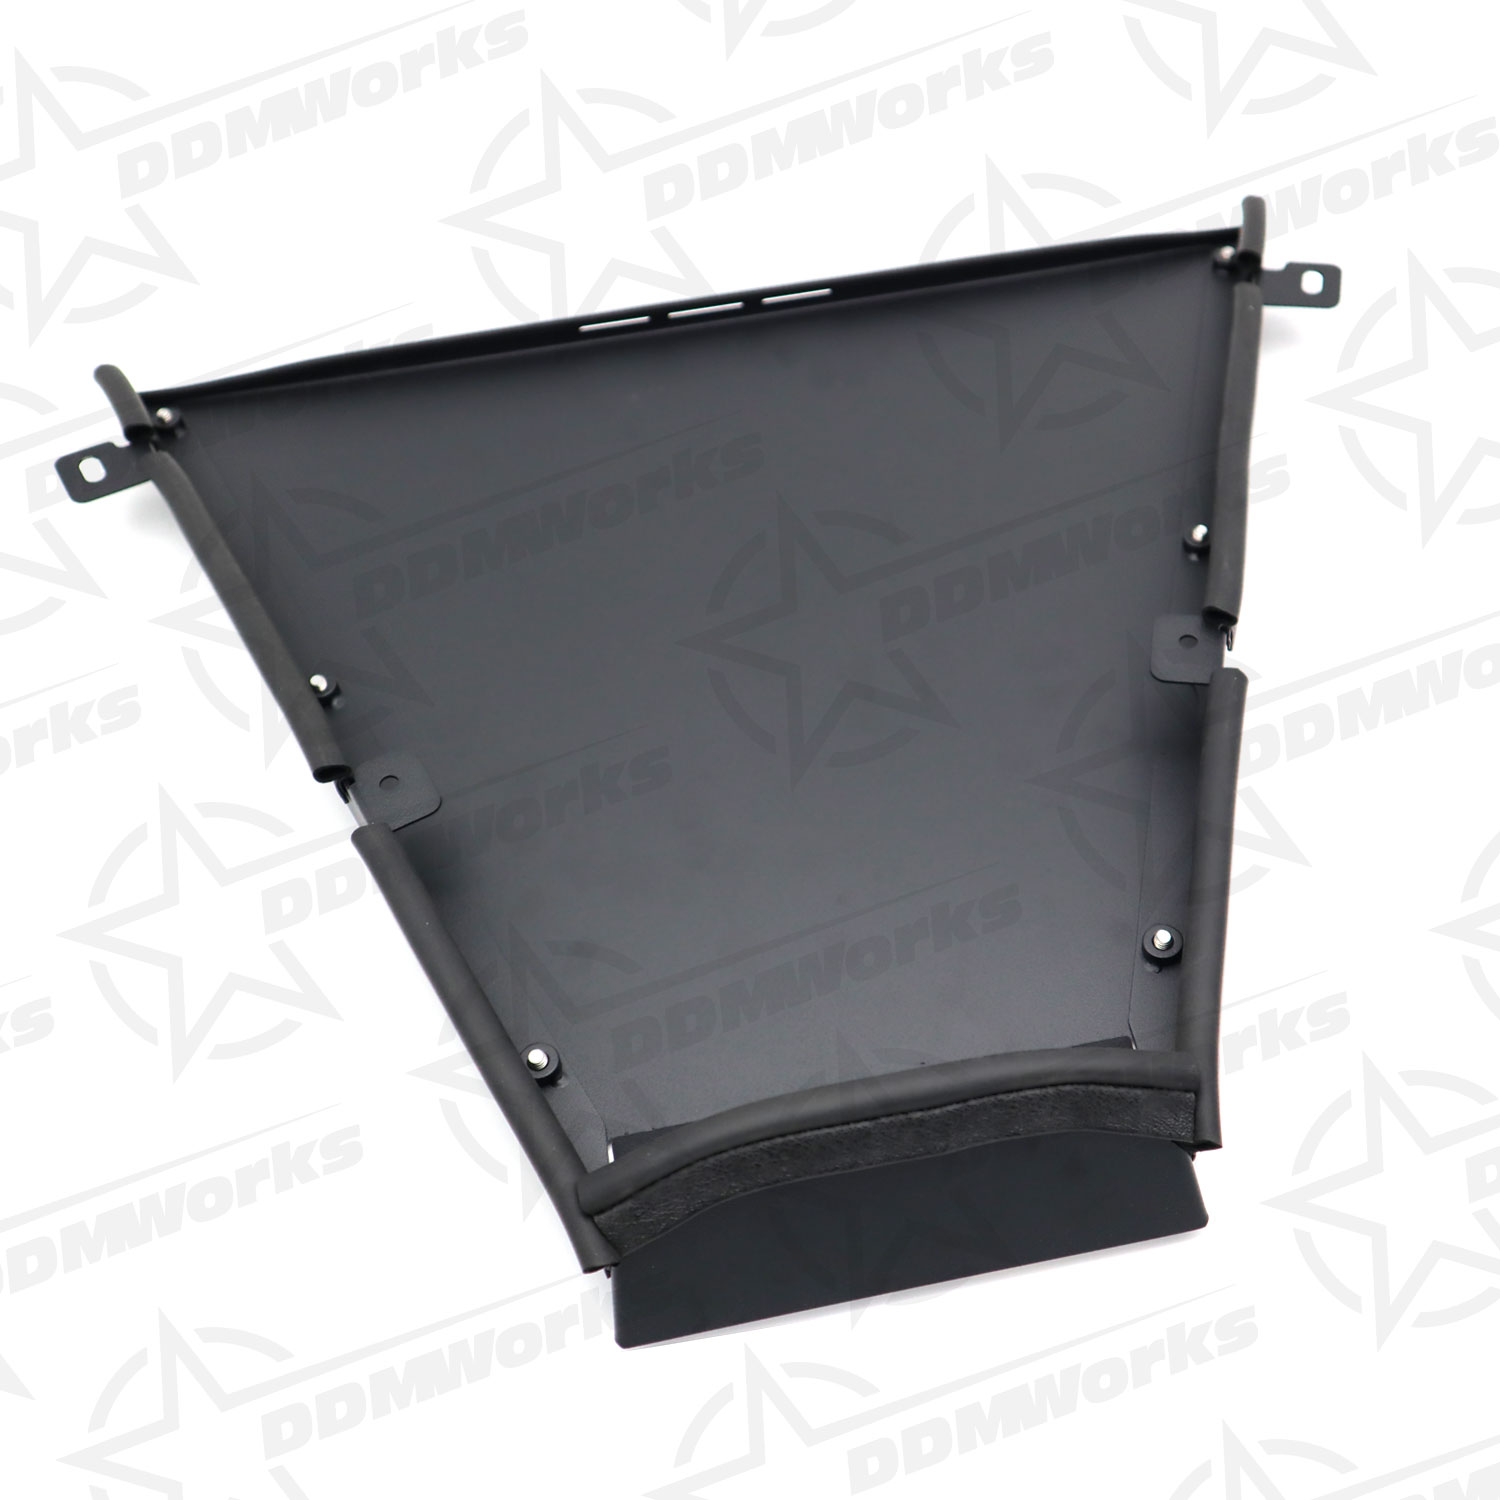 R56 Mini Cooper Ram Air Scoop